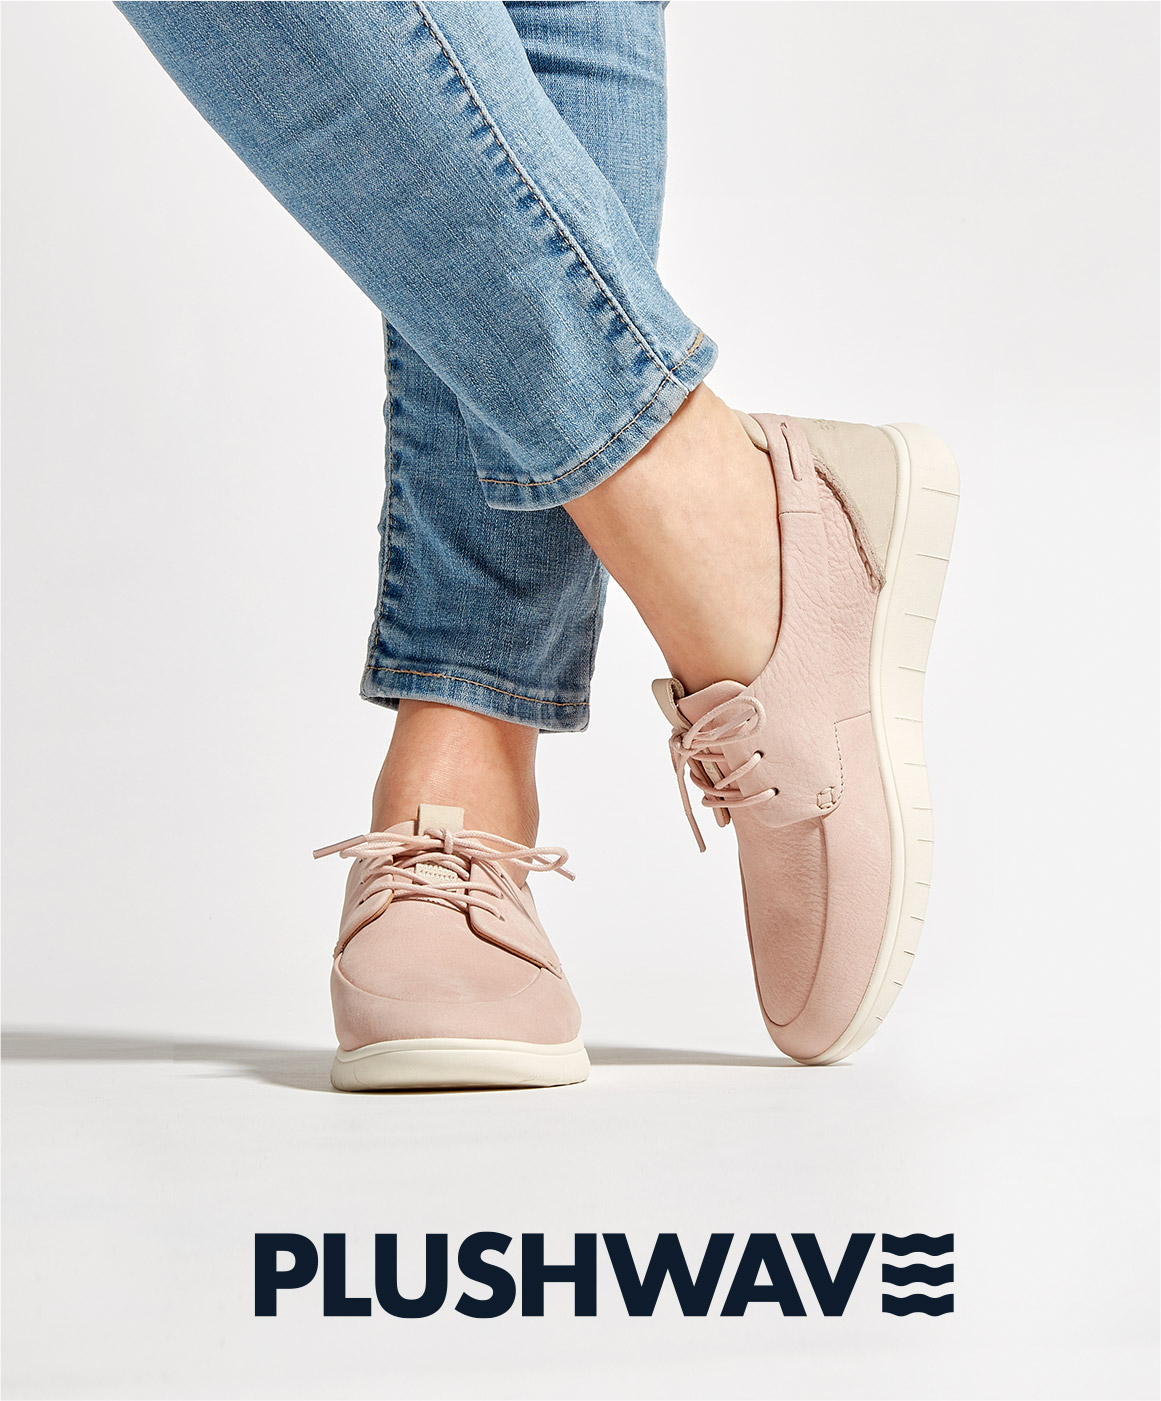 Women crossing her legs with her toe down and heel in the air, and she's wearing comfortable Plushwave Sperrys.